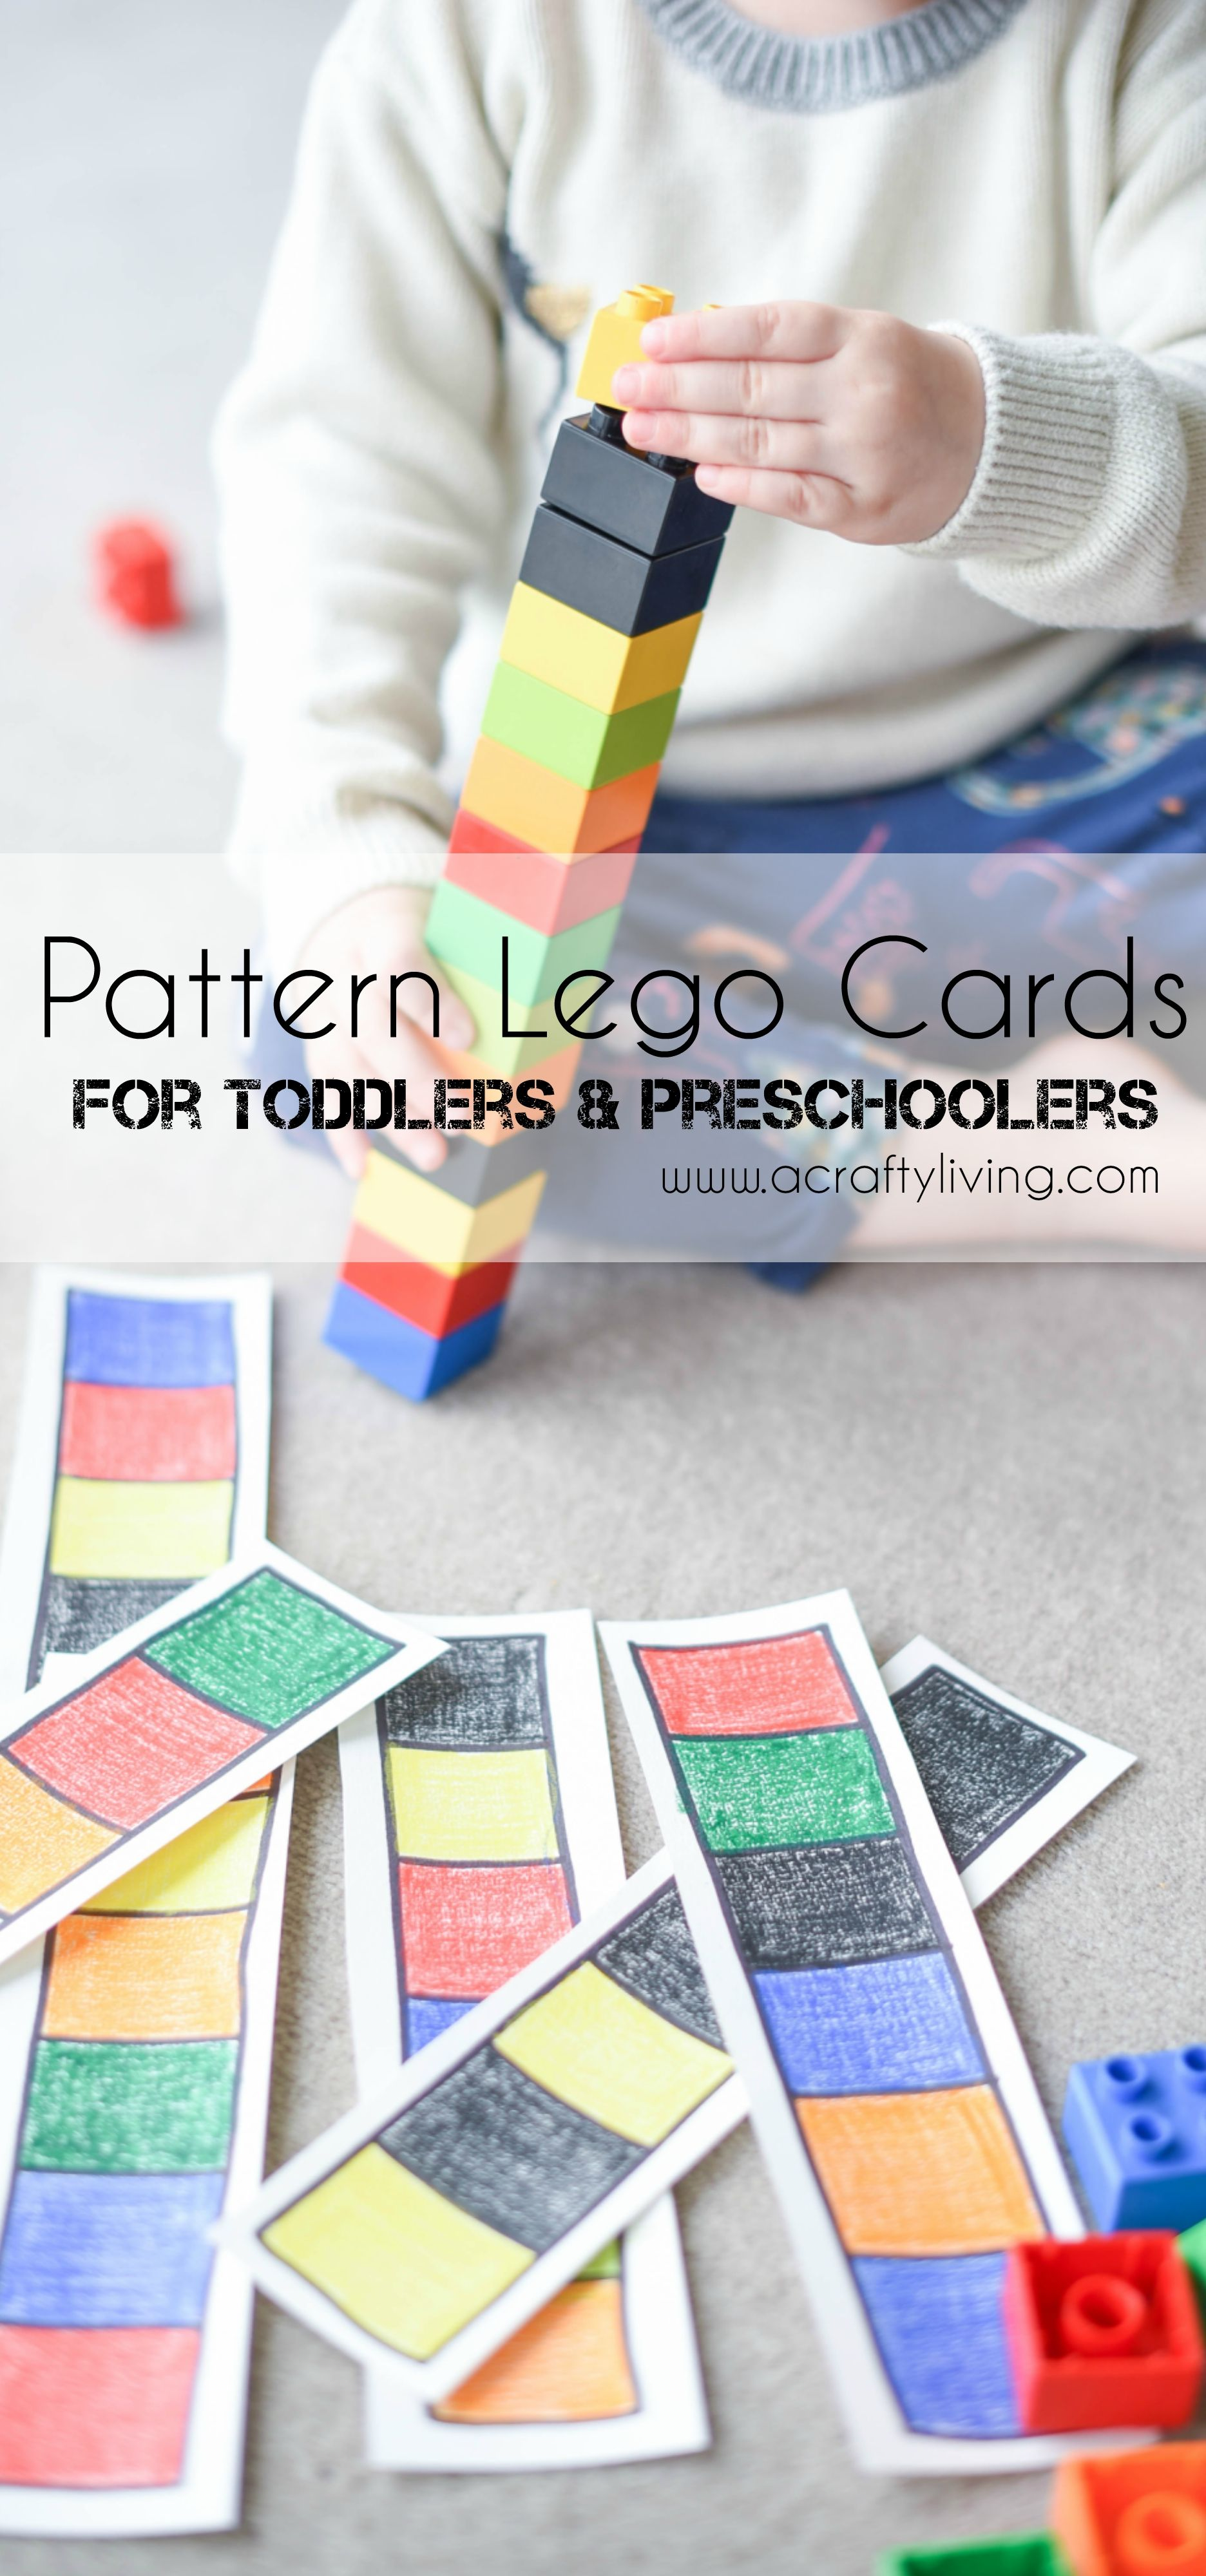 Diy Lego Pattern Cards For Toddlers Amp Preschoolers